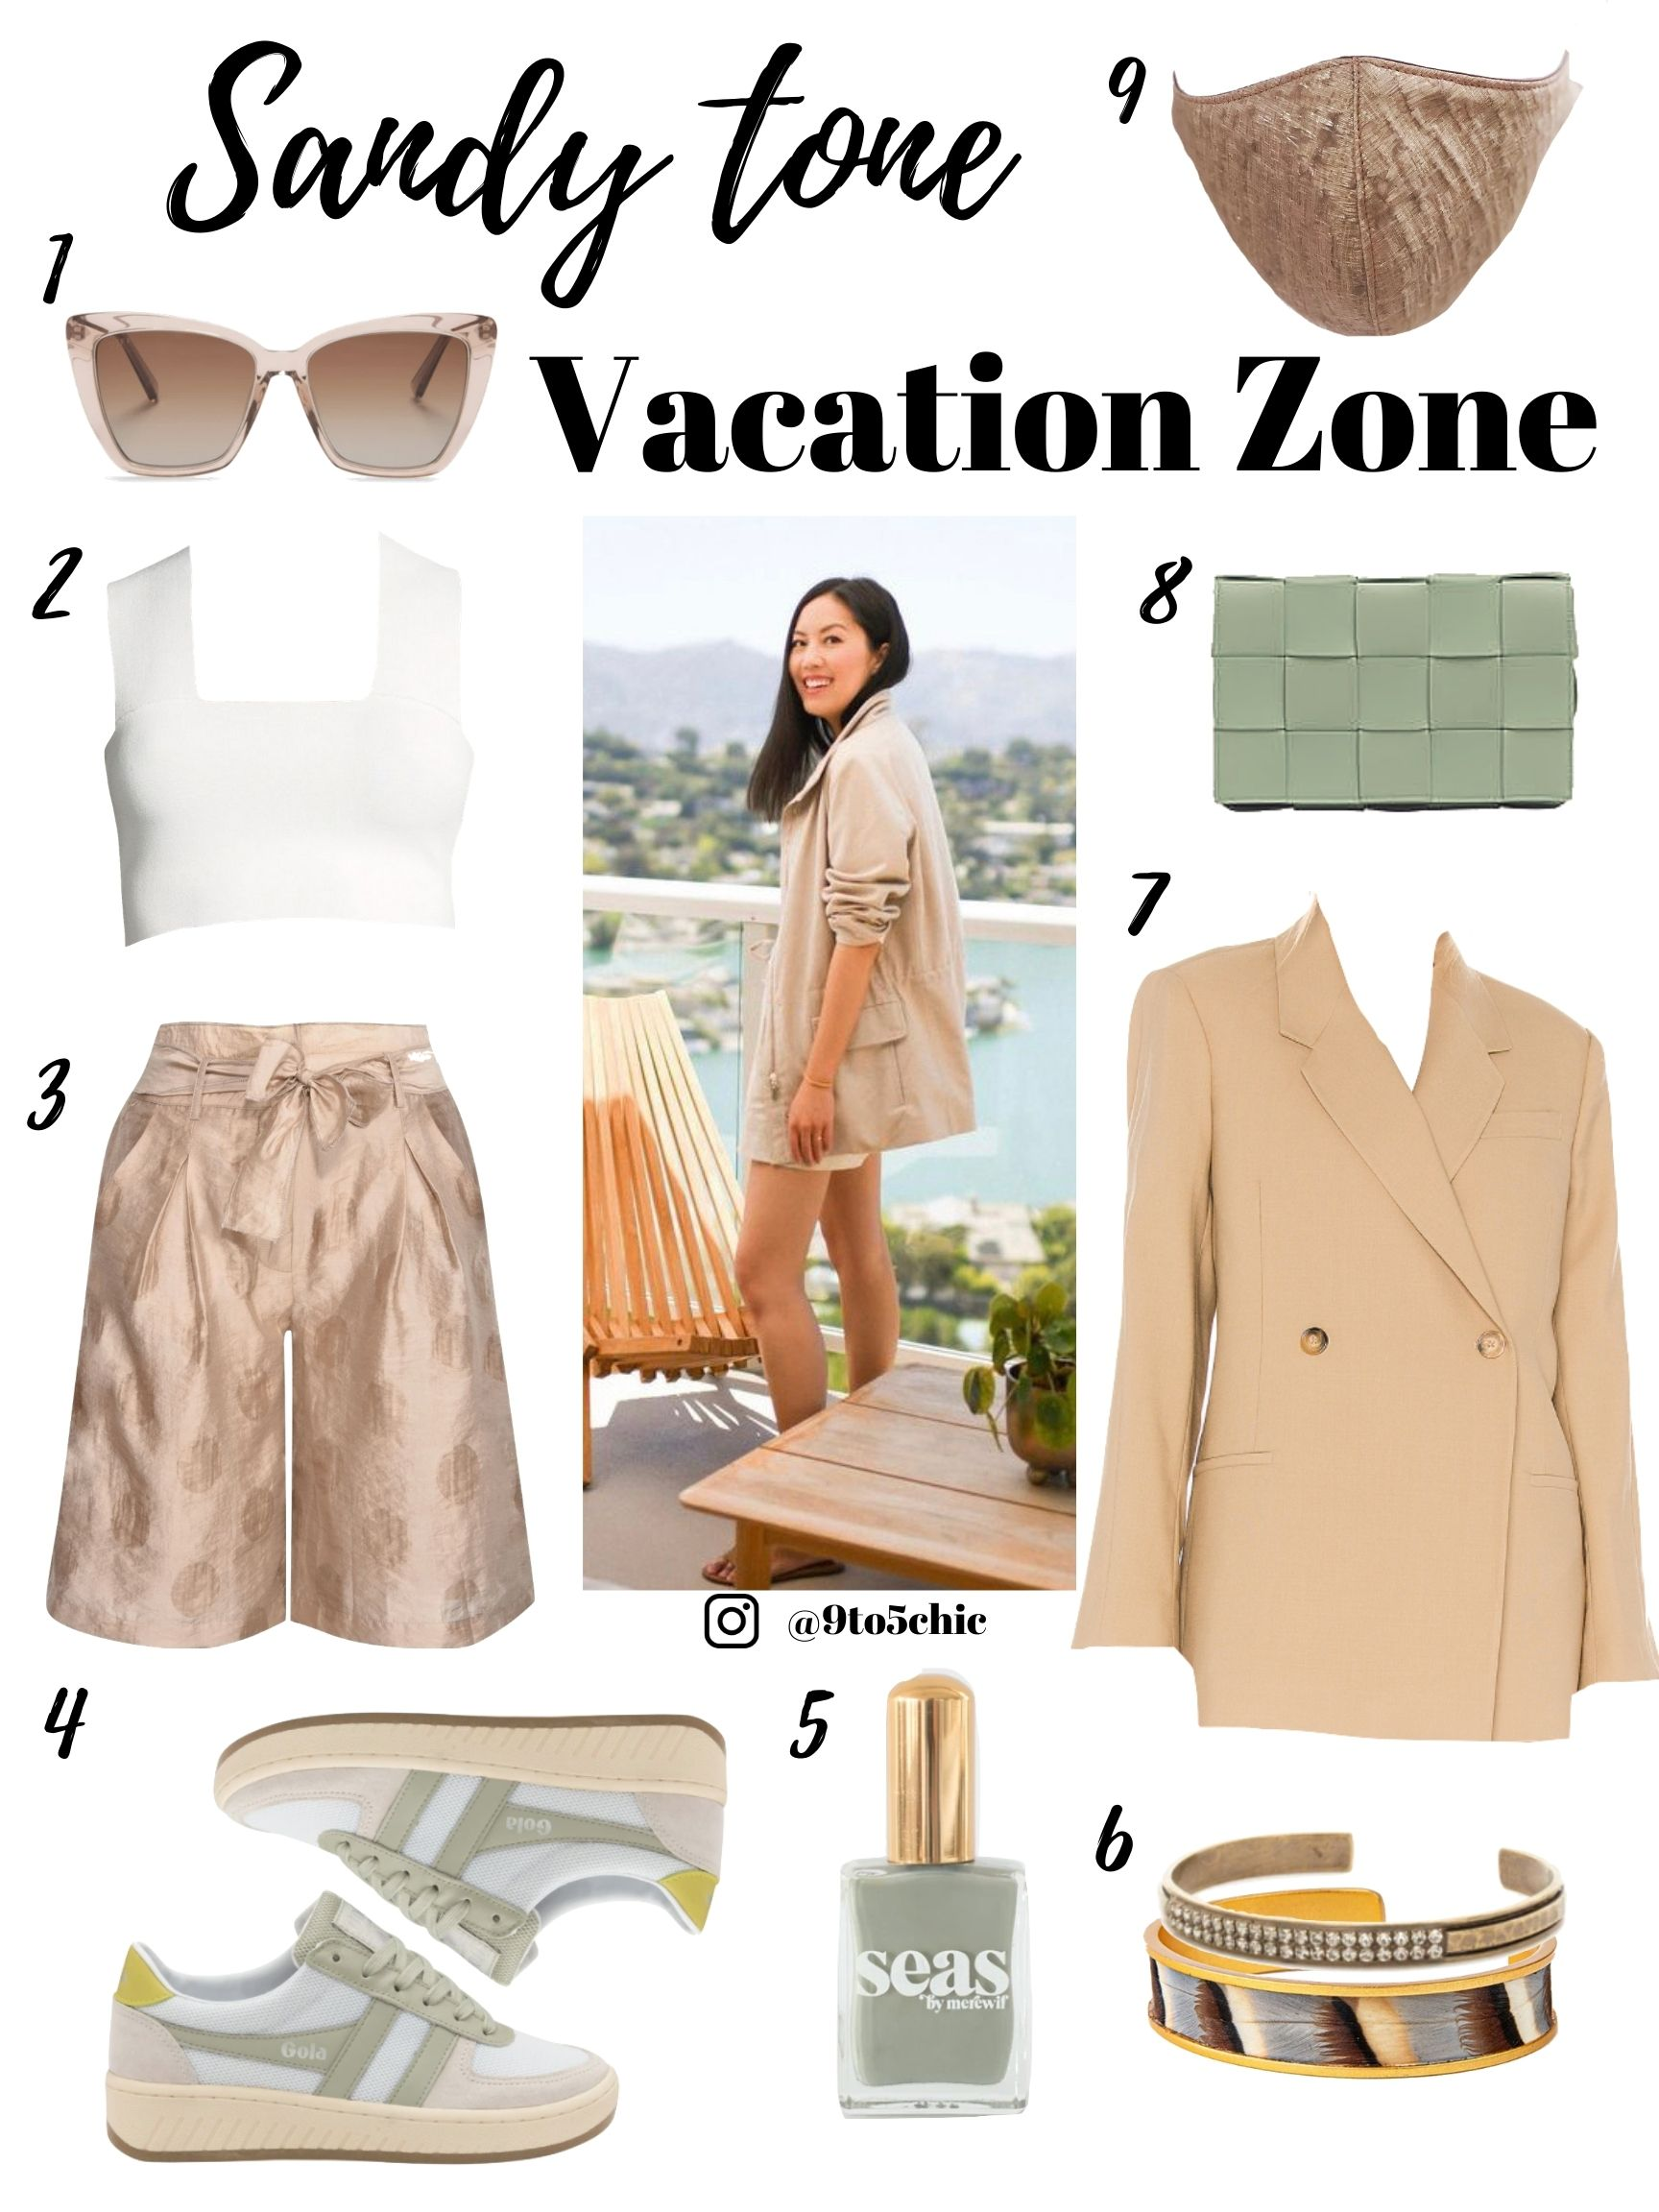 sandy tone outfit